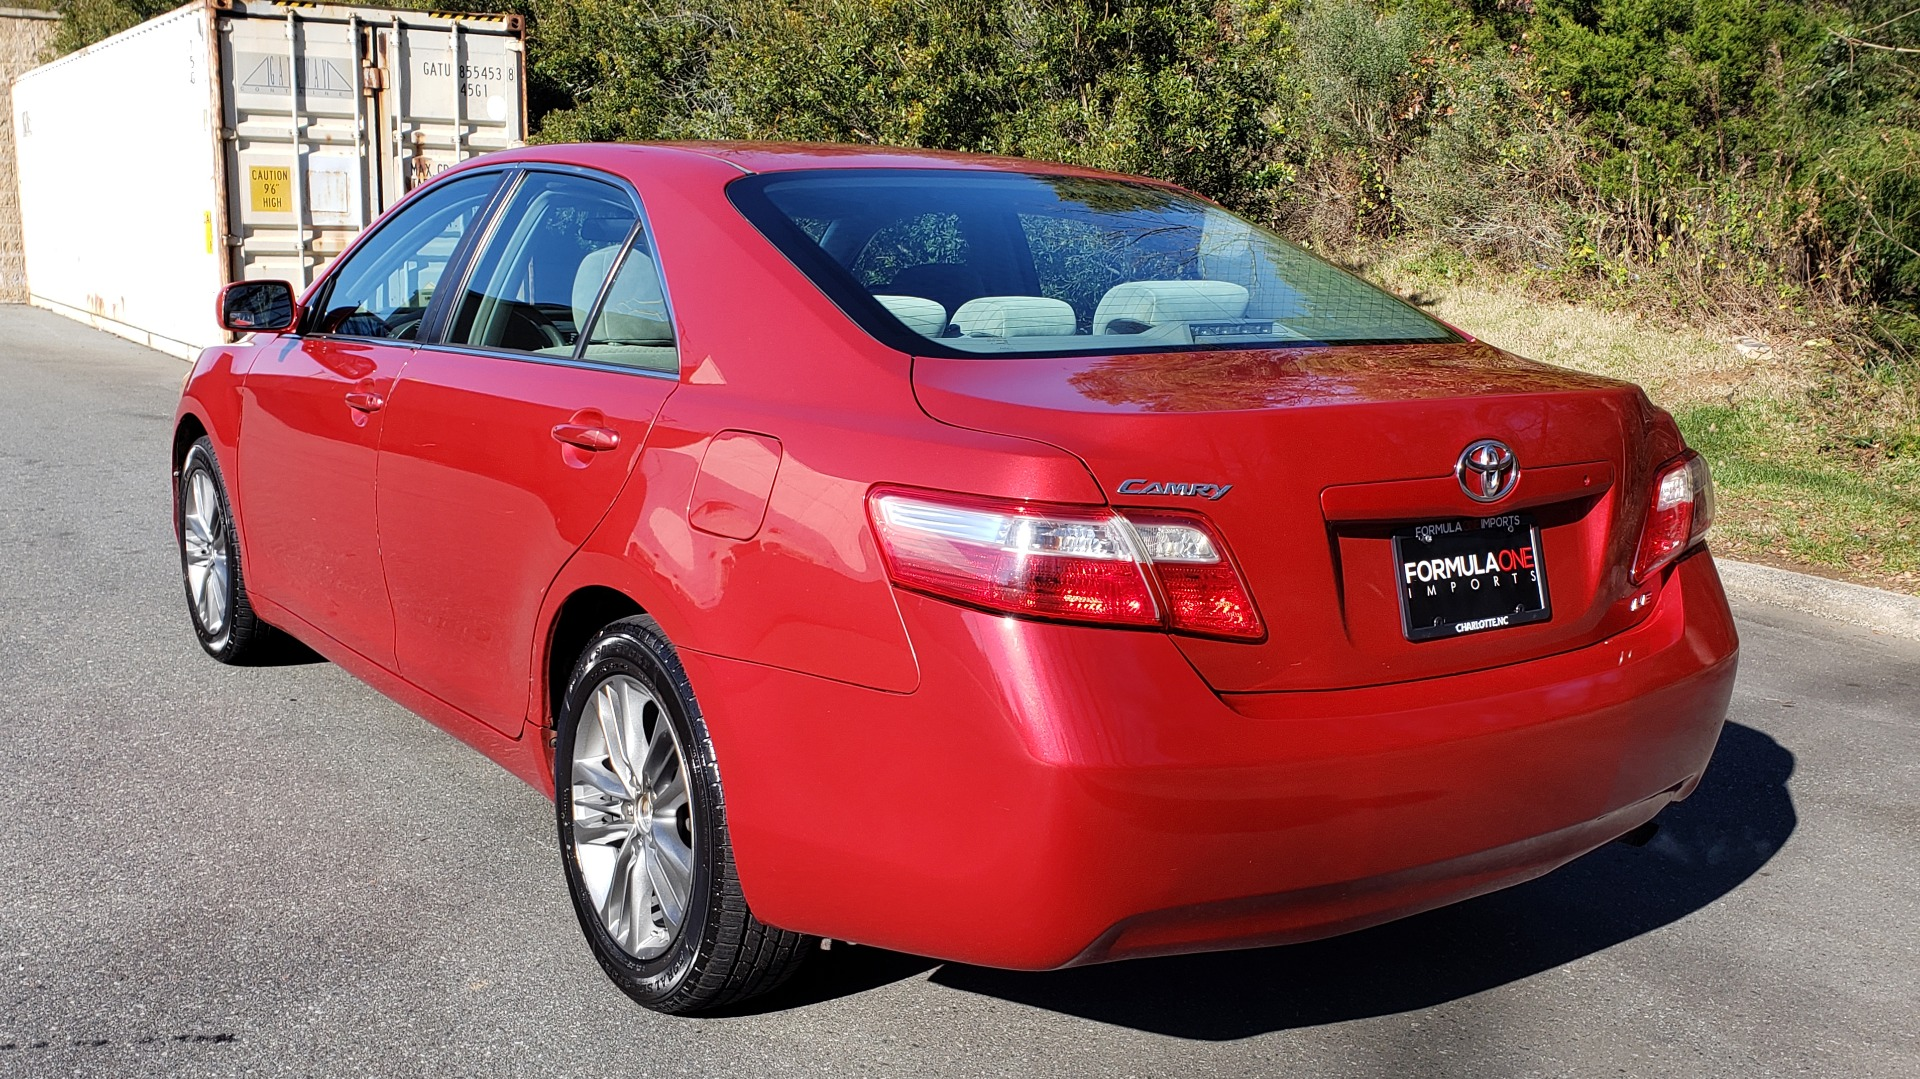 Used 2009 Toyota CAMRY LE / 2.4L SEDAN / FWD / 4-CYL / AUTO / CLOTH / CLEAN for sale $4,999 at Formula Imports in Charlotte NC 28227 3